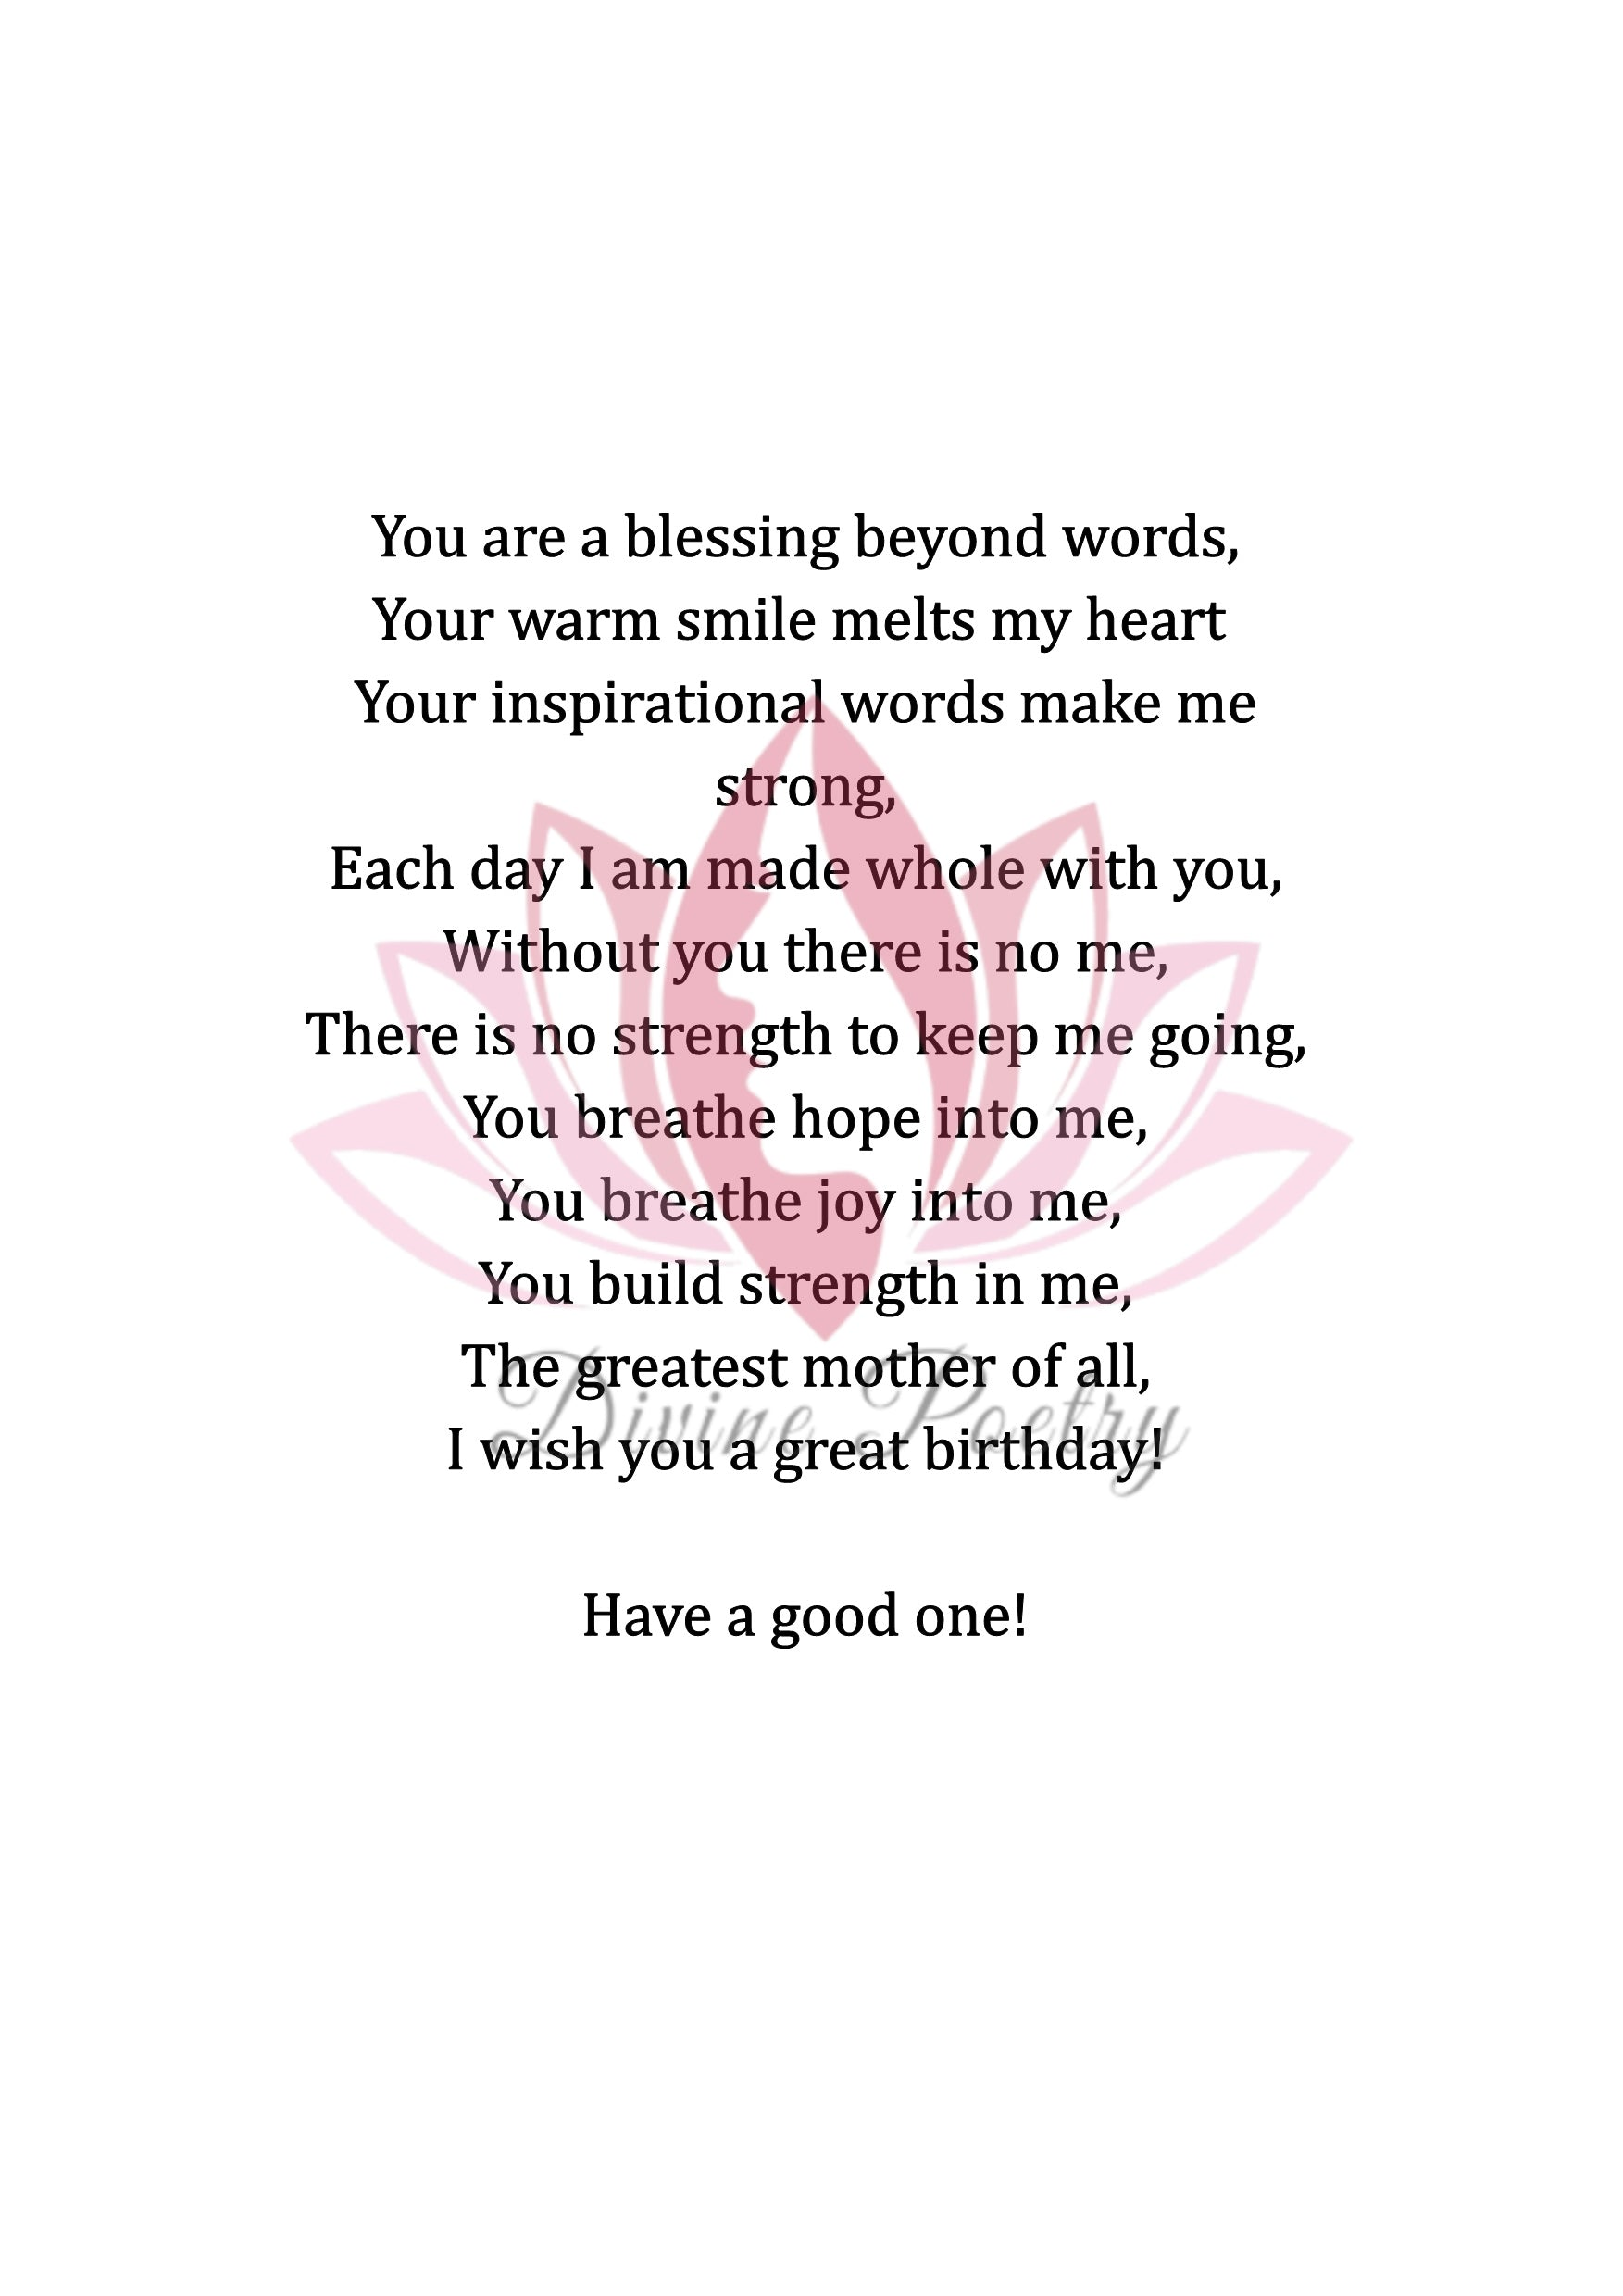 To My Great Stepmother - Divine Poetry